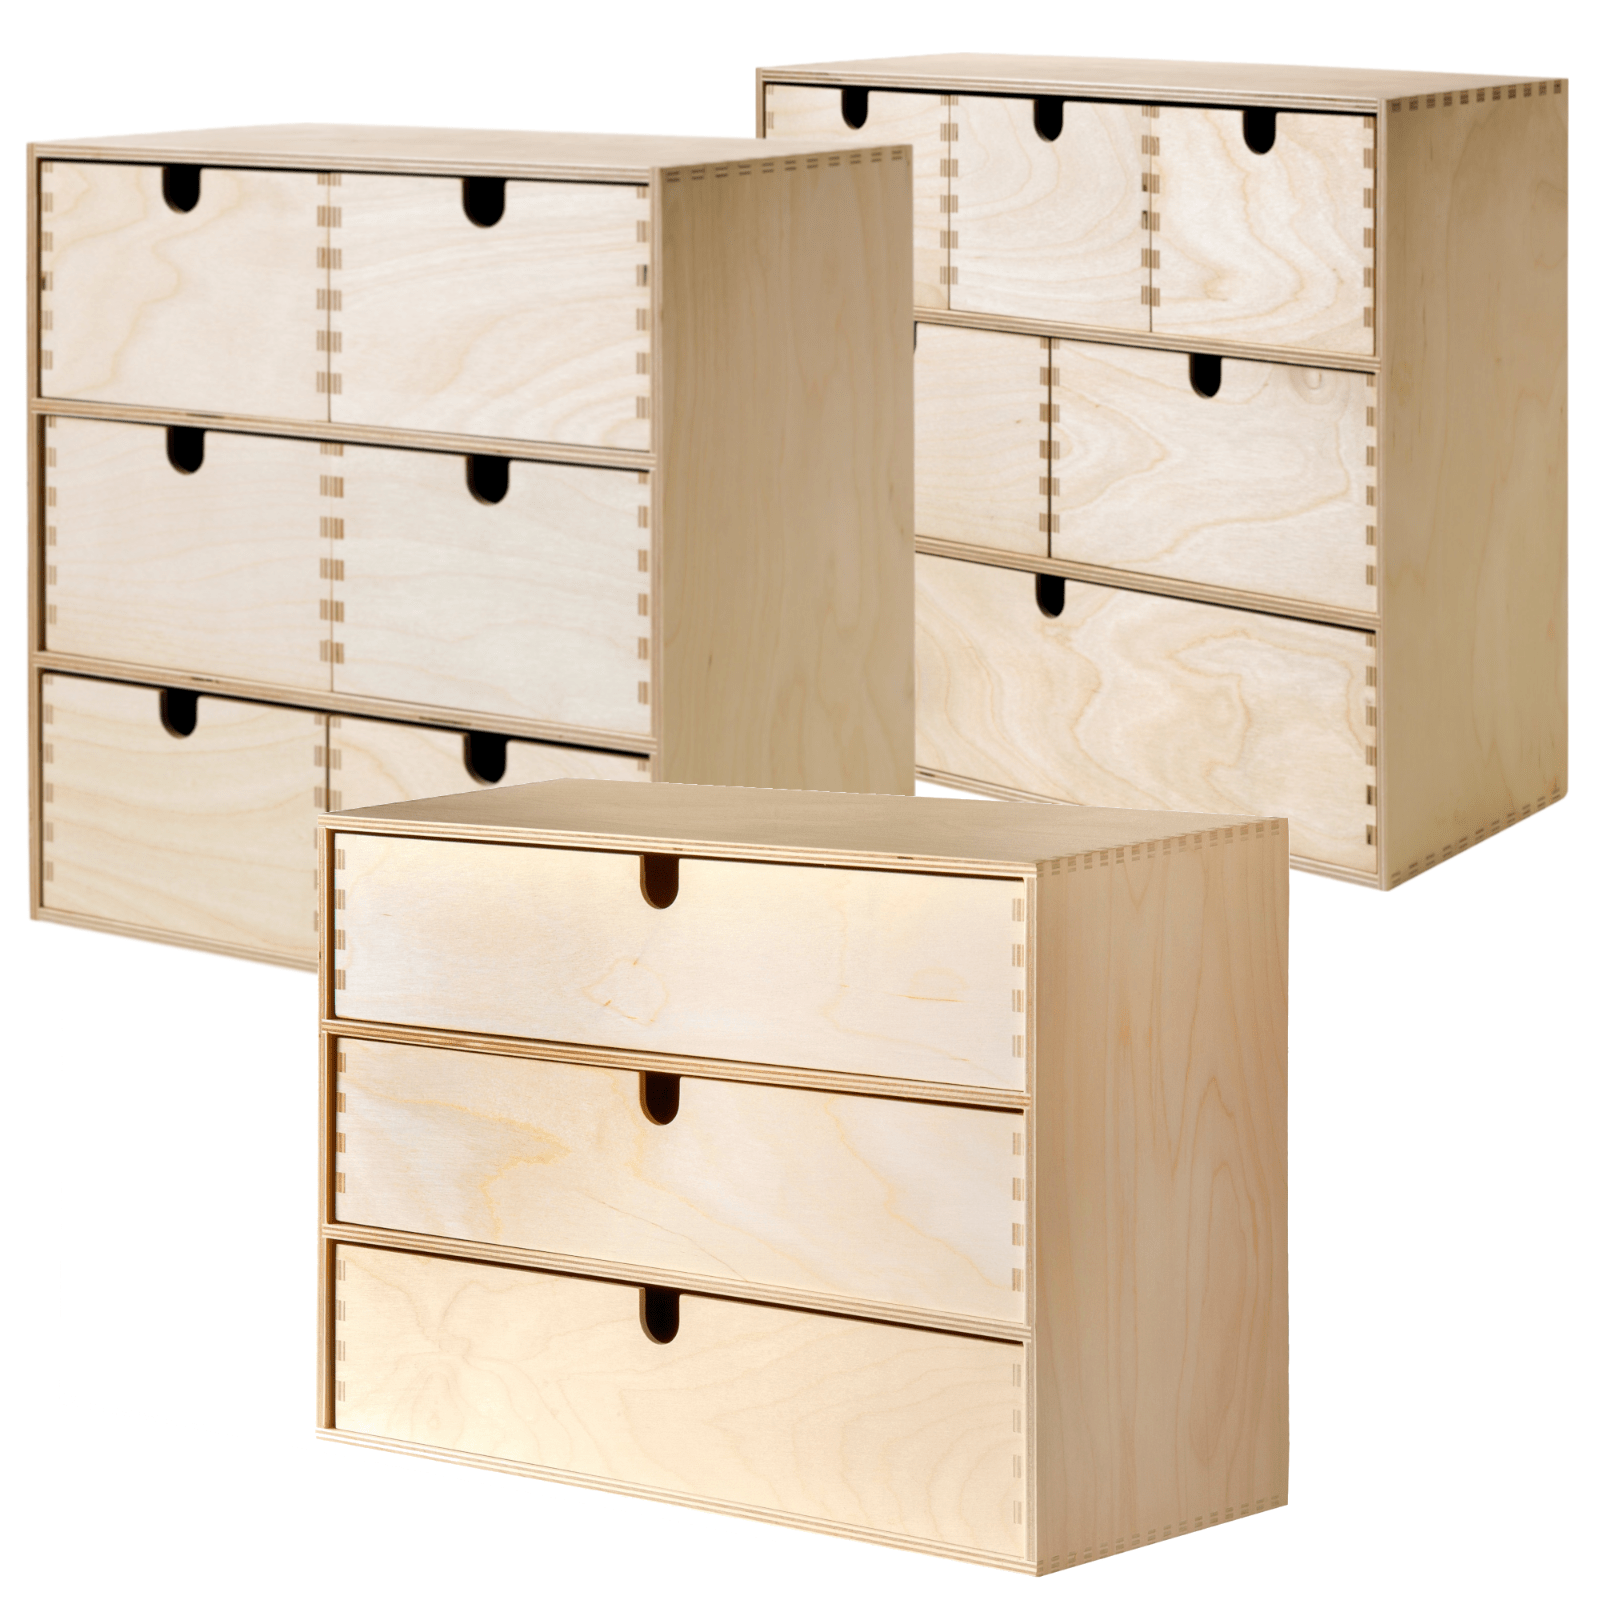 Schubladen Organizer Küche Ikea Купить Ikea Mini Kommode